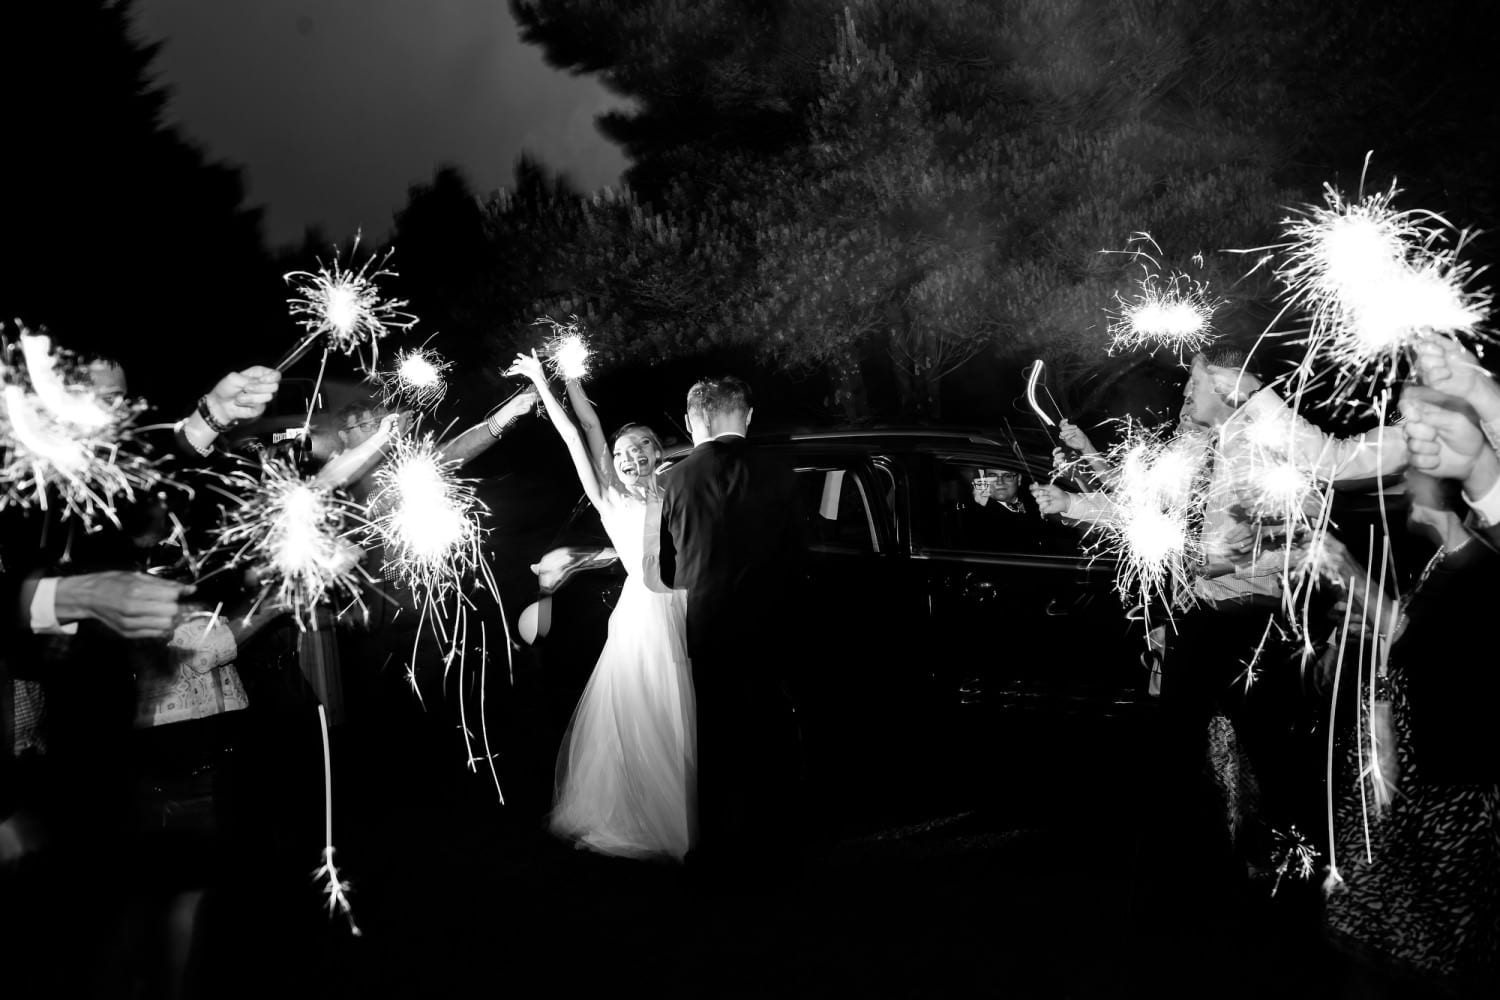 Storm Crest Cellars Wedding in South Beach Newport, Oregon by Stark Photography (2)